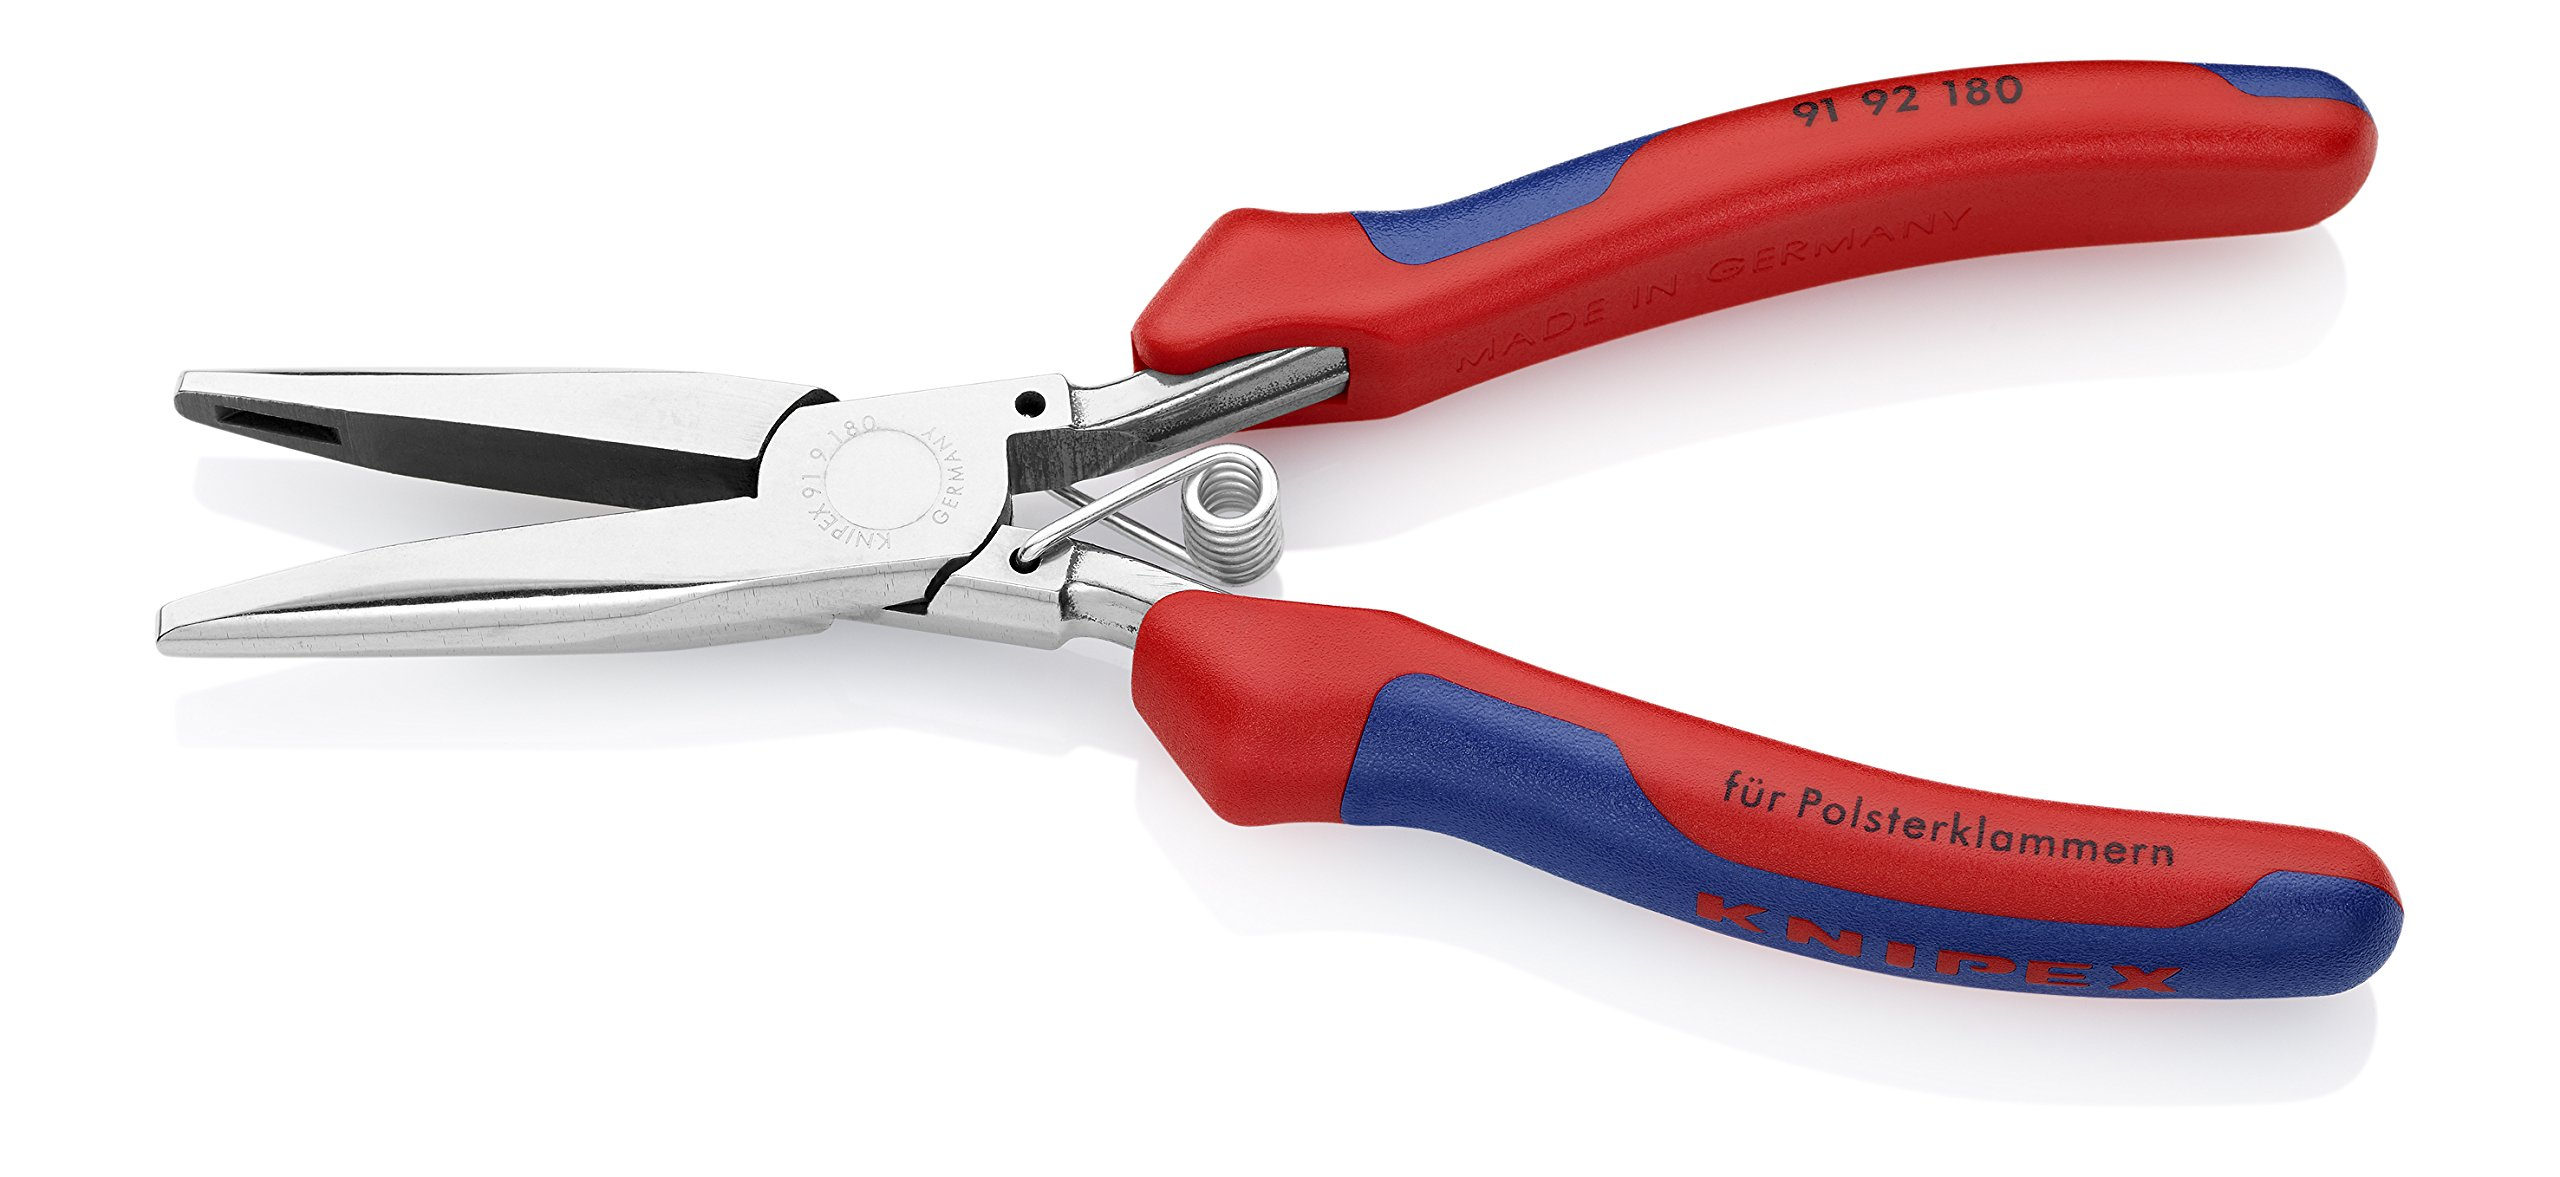 Knipex Tools 91 92 180 7'' Hog Ring Upholstery Pliers